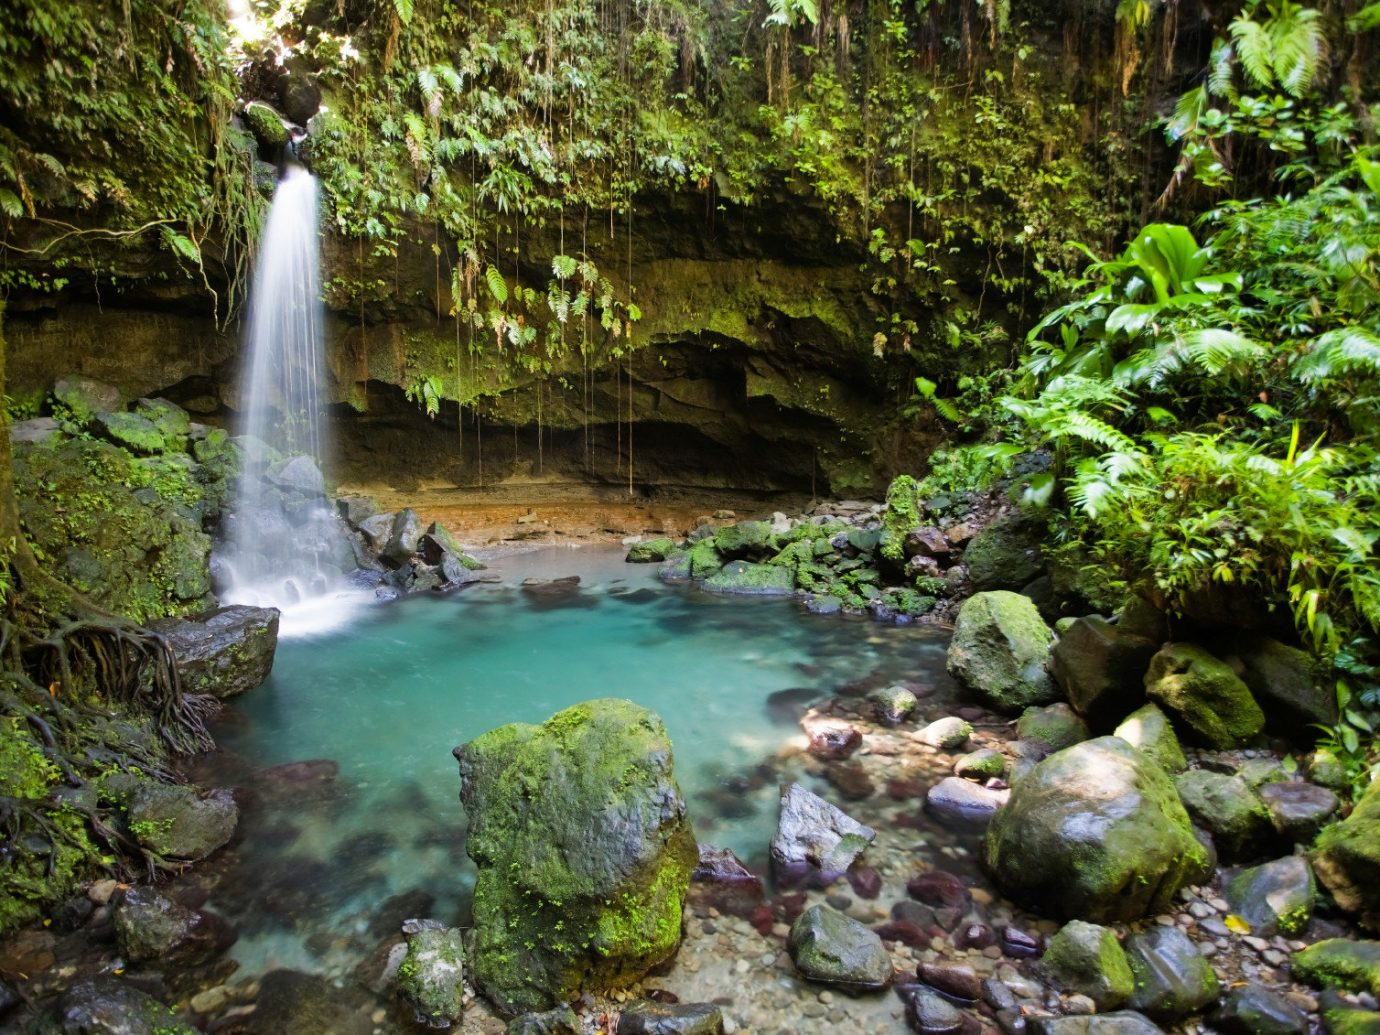 Health + Wellness Trip Ideas outdoor habitat Nature Waterfall water vegetation body of water green watercourse stream rock botany rainforest water feature Forest River Jungle woodland old growth forest area surrounded